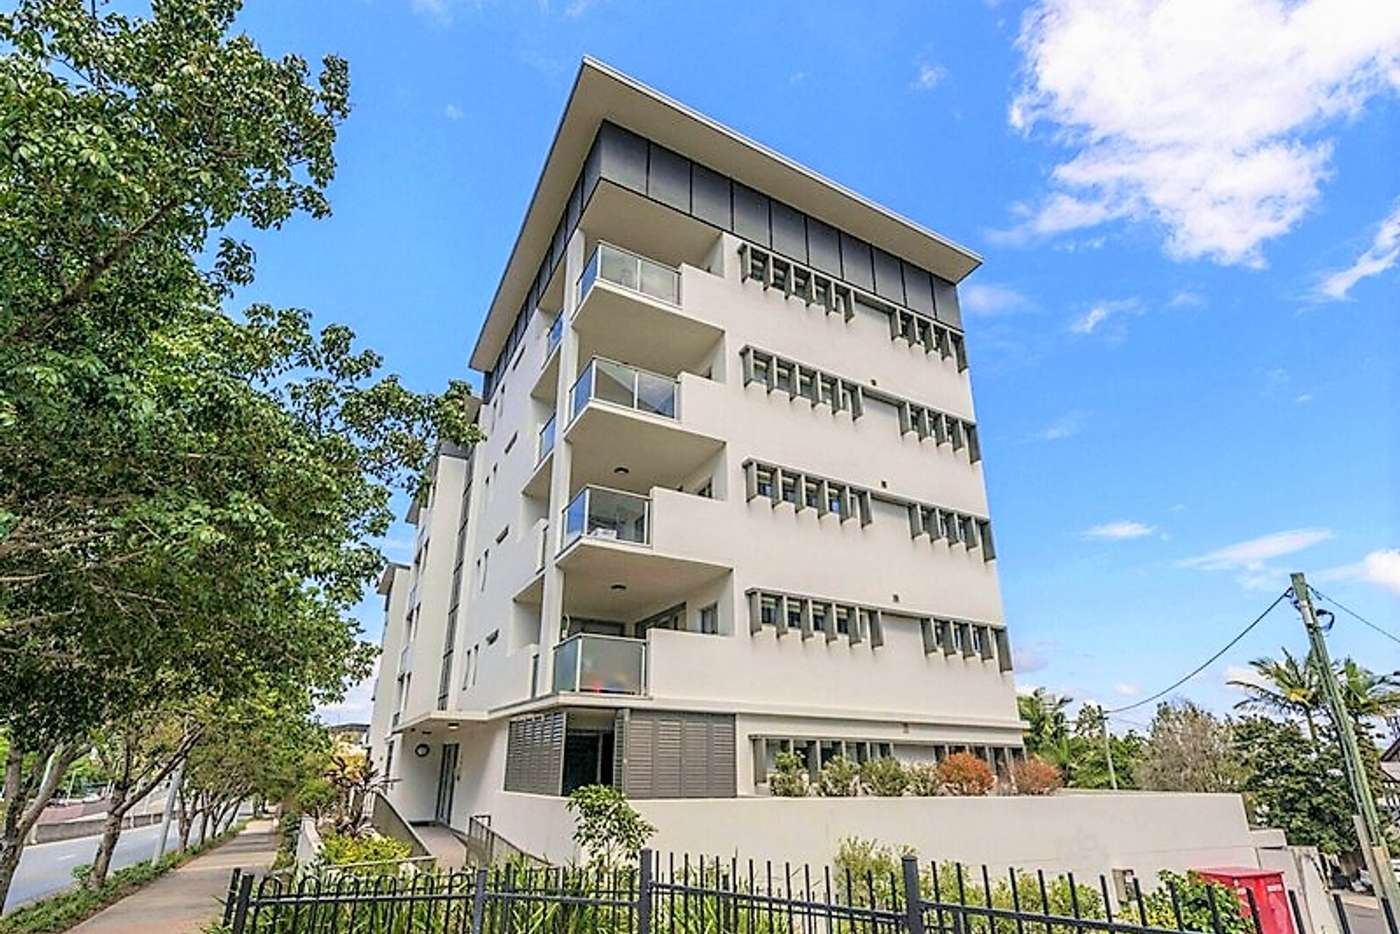 Main view of Homely apartment listing, 503/37 Connor Street, Kangaroo Point QLD 4169